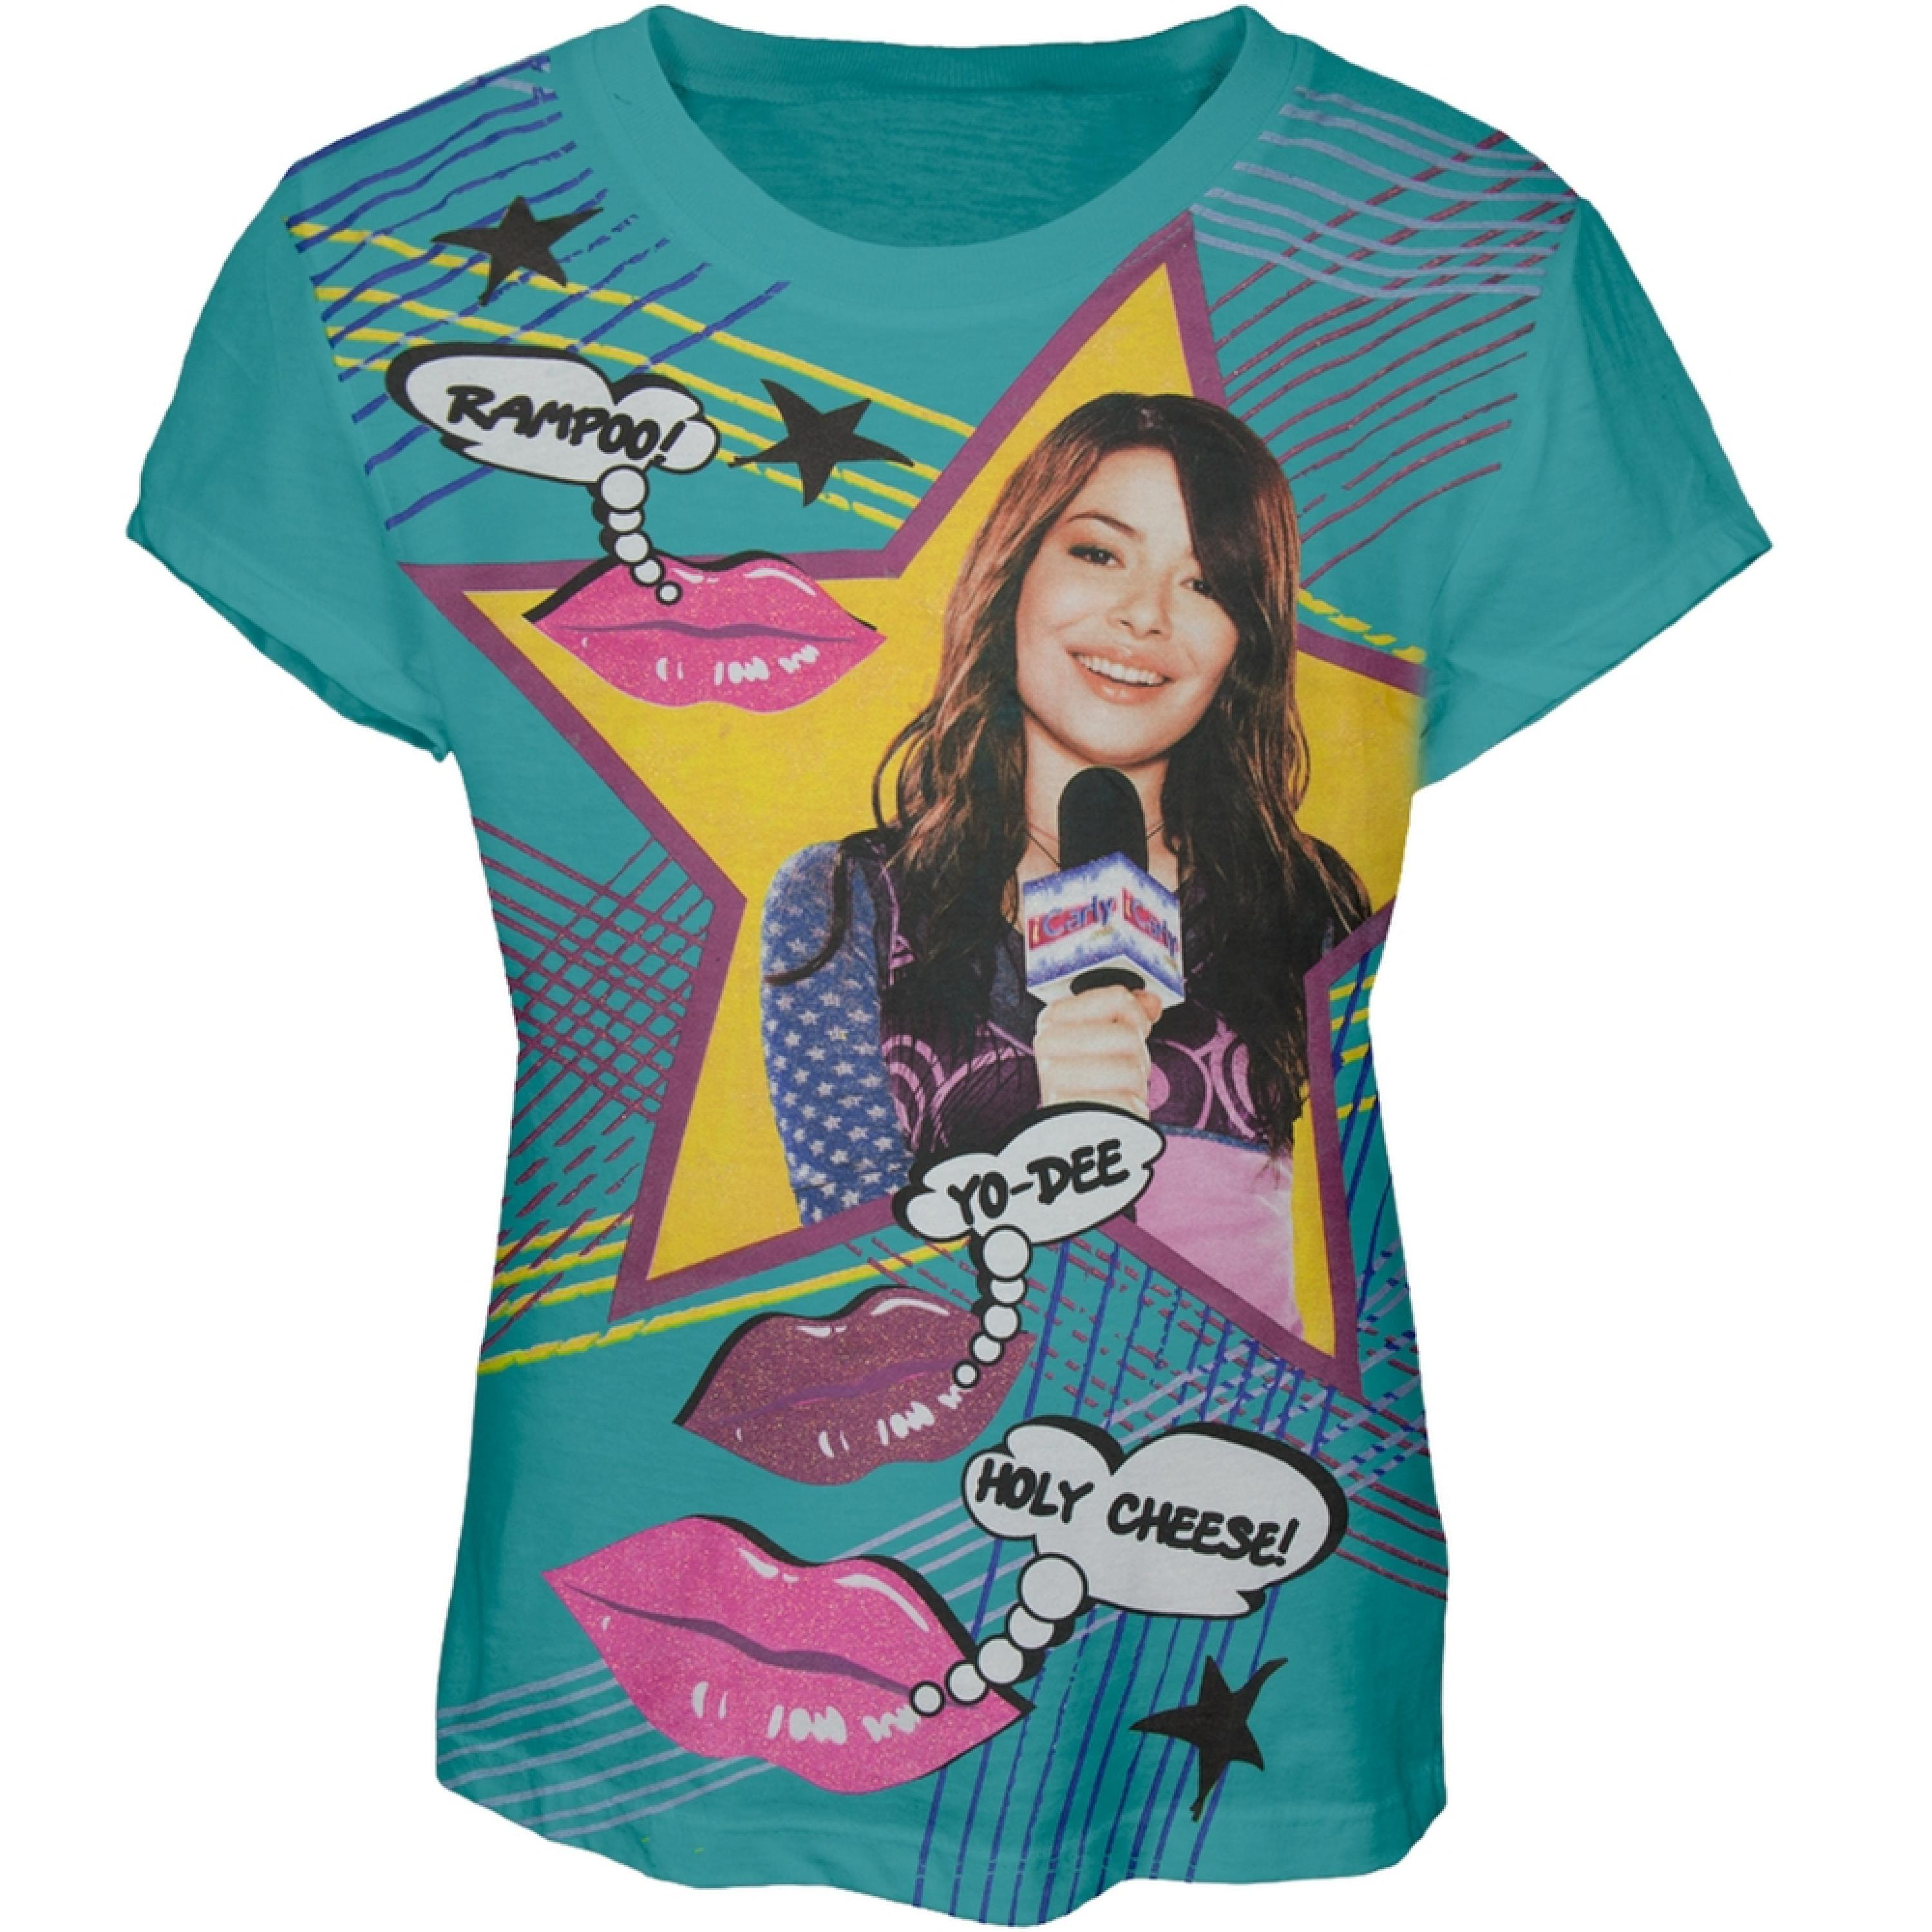 iCarly - Holy Cheese Girls Youth T-Shirt